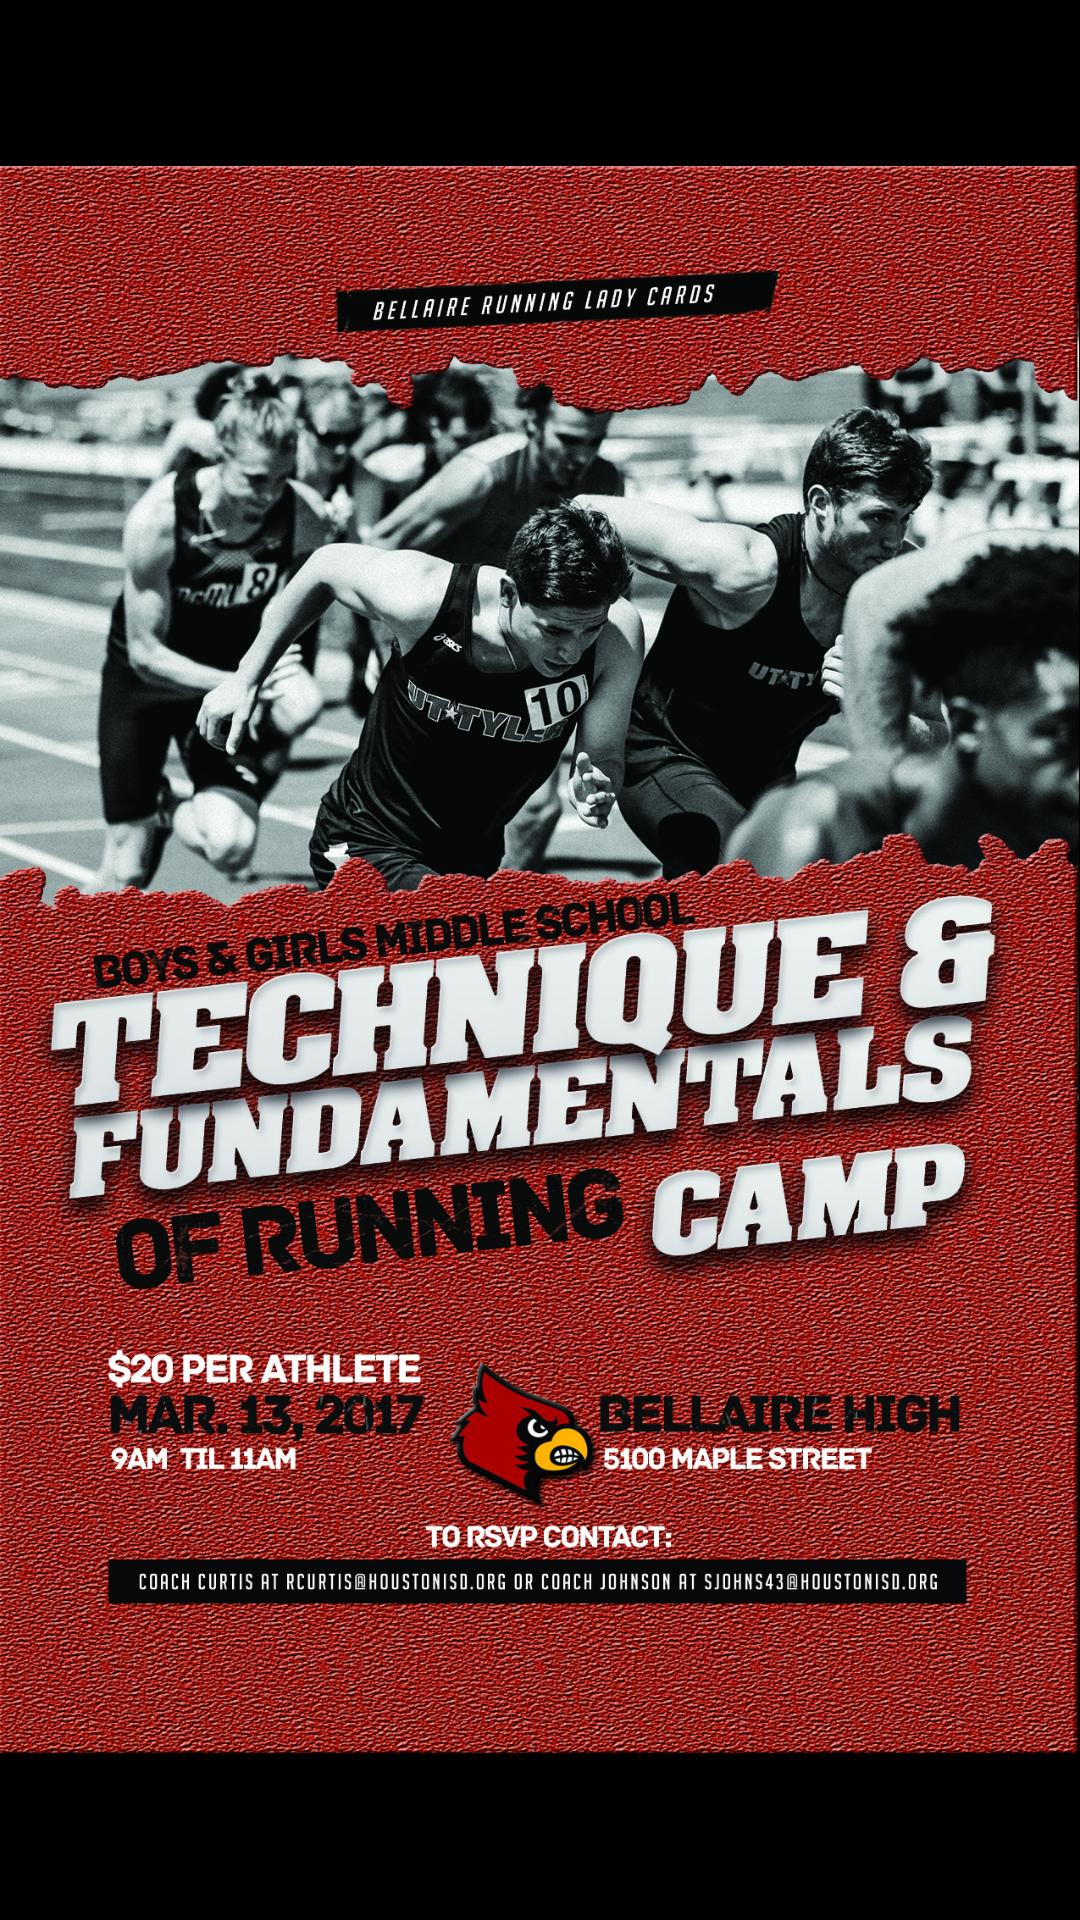 Techniques & Funamdentals of Running Camp